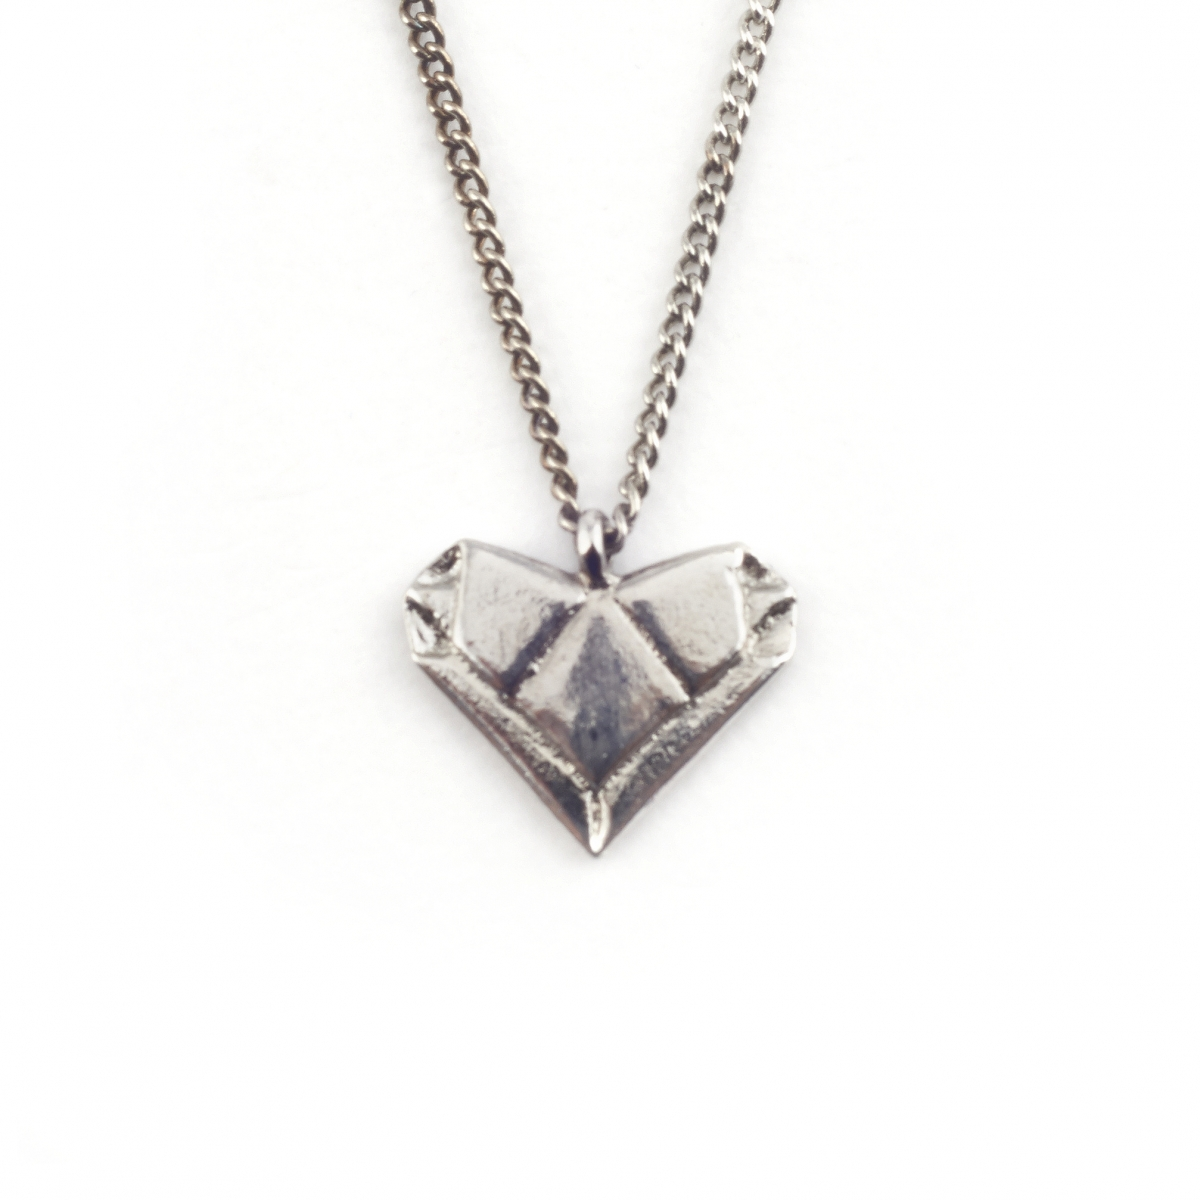 SILVER ORIGAMI HEART PENDANT | Fashion Jewellery - photo#48